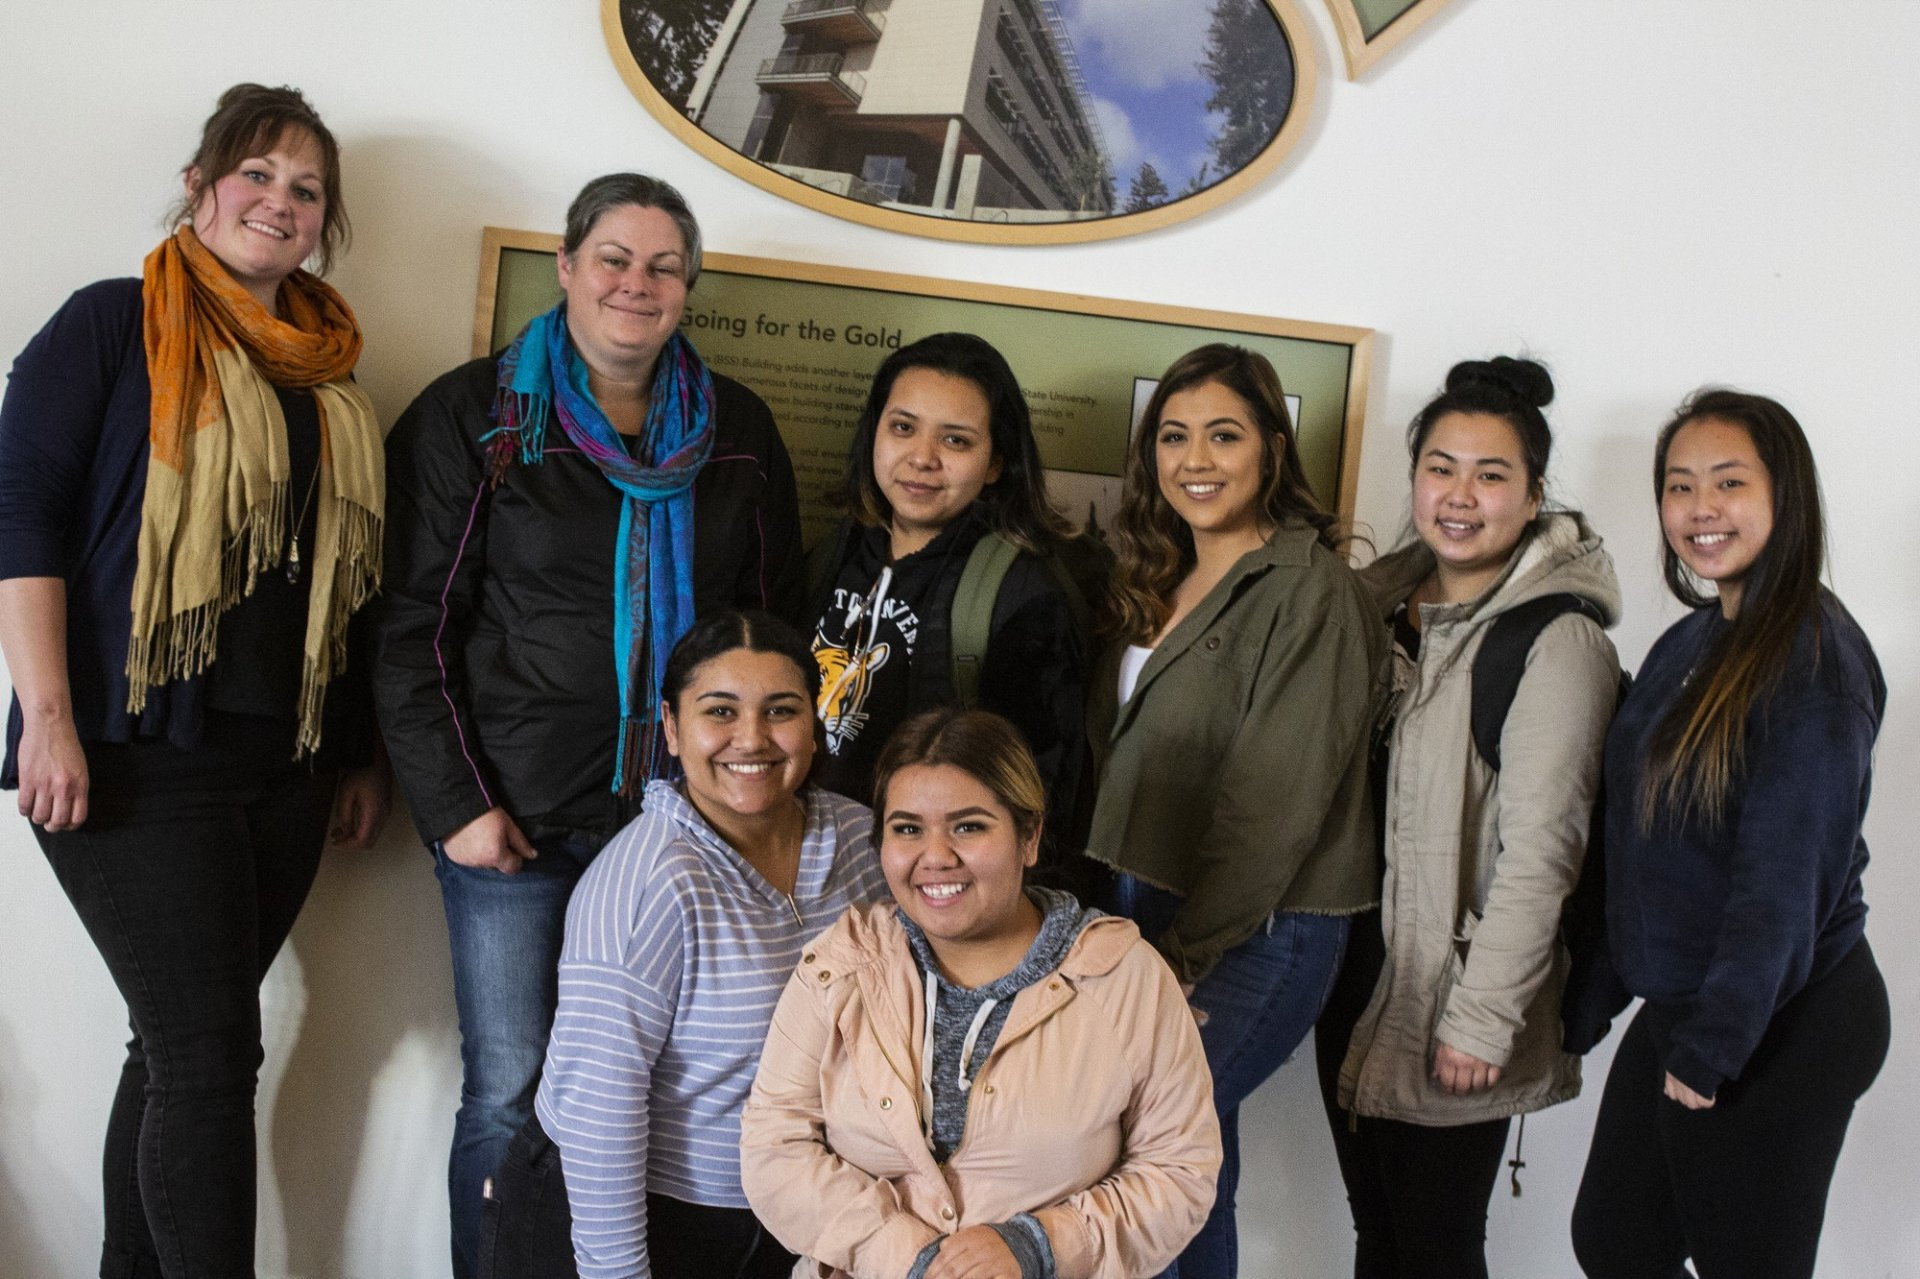 Laura Garcia (bottom left) gathered 30 signatures from students and submitted them along with a prepared statement to the University Senate on Nov.13, 2018. By William F. Brewster